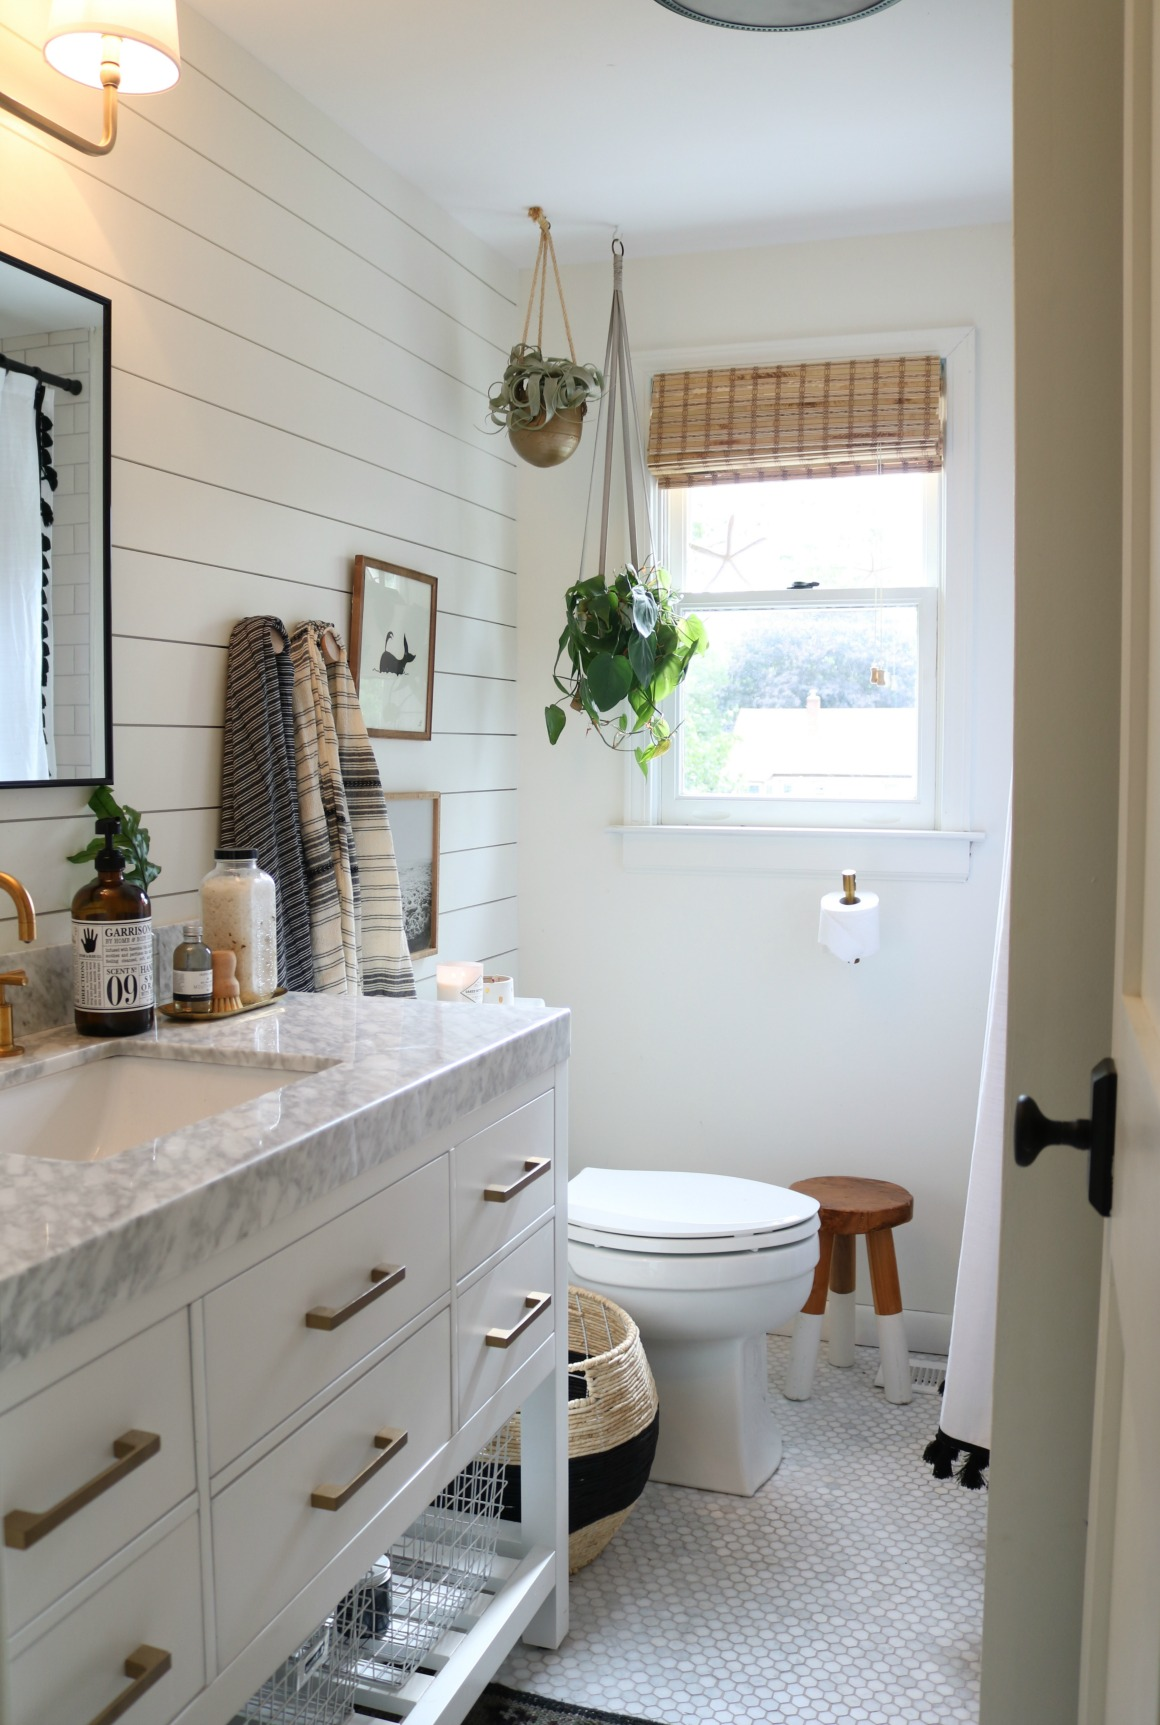 Bathroom accessories and accent table